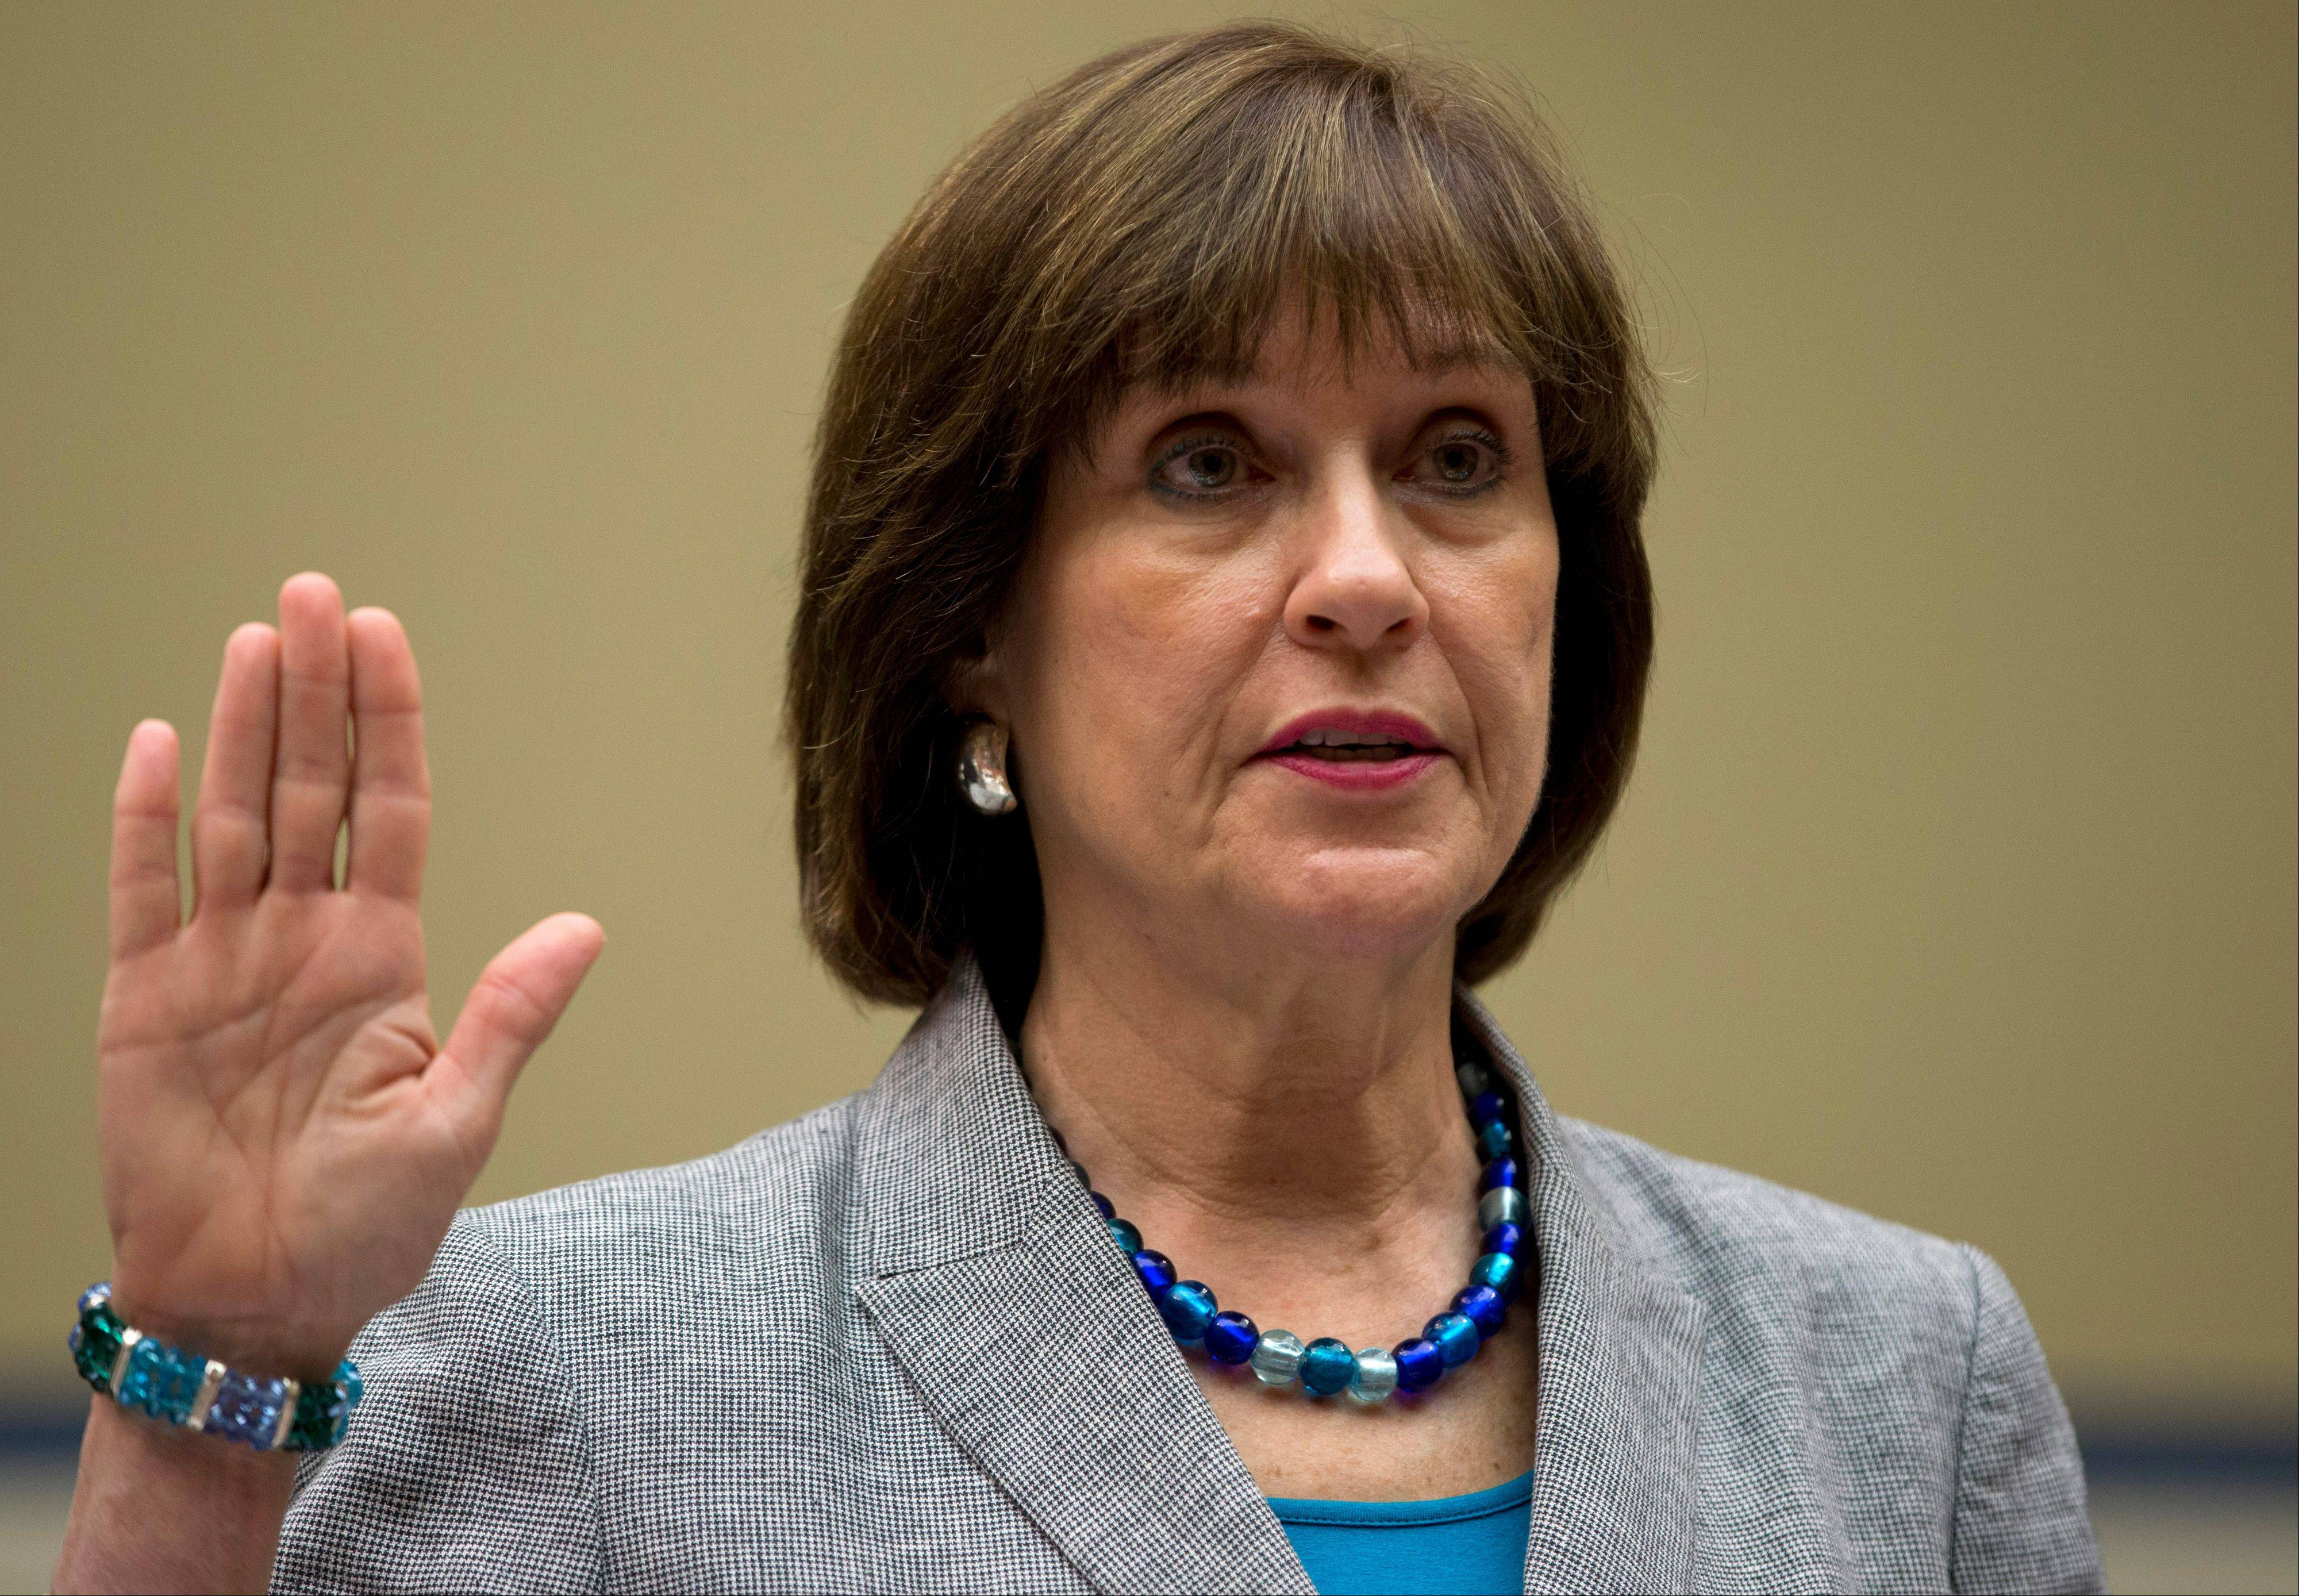 In this May 22, 2013, file photo, IRS official Lois Lerner is sworn in on Capitol Hill in Washington. Lerner headed the IRS division that handles applications for tax-exempt status when she was placed on paid leave in May. While she was in charge, the agency acknowledged that agents improperly targeted Tea Party groups for extra scrutiny when they applied for tax-exempt status from 2010 to 2012.